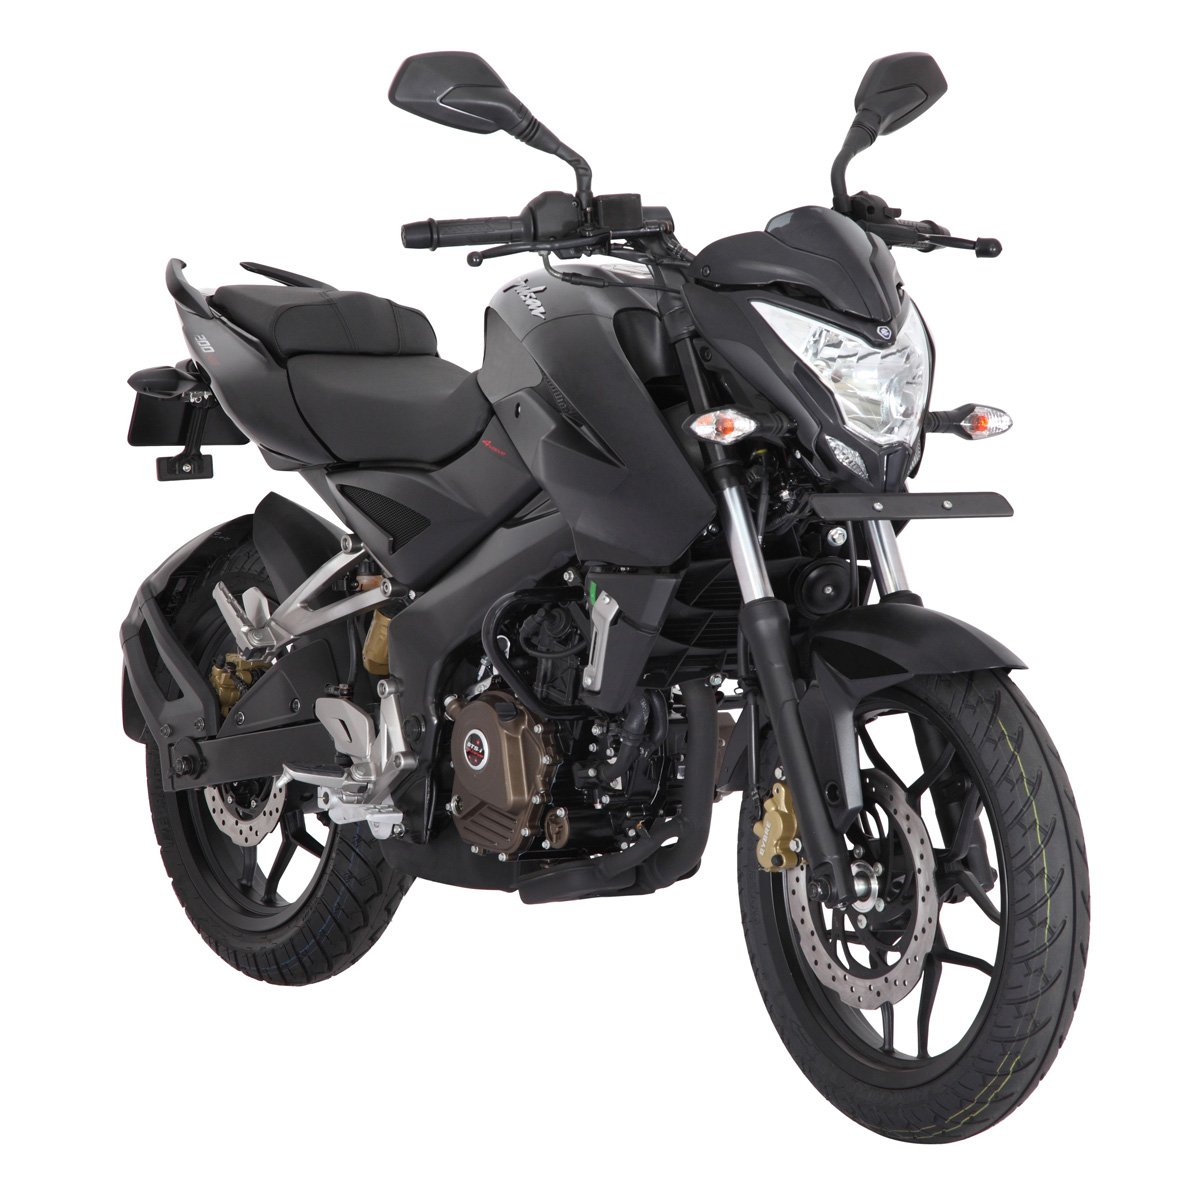 Bajaj pulsar 200 ns on road price in bangalore dating 6